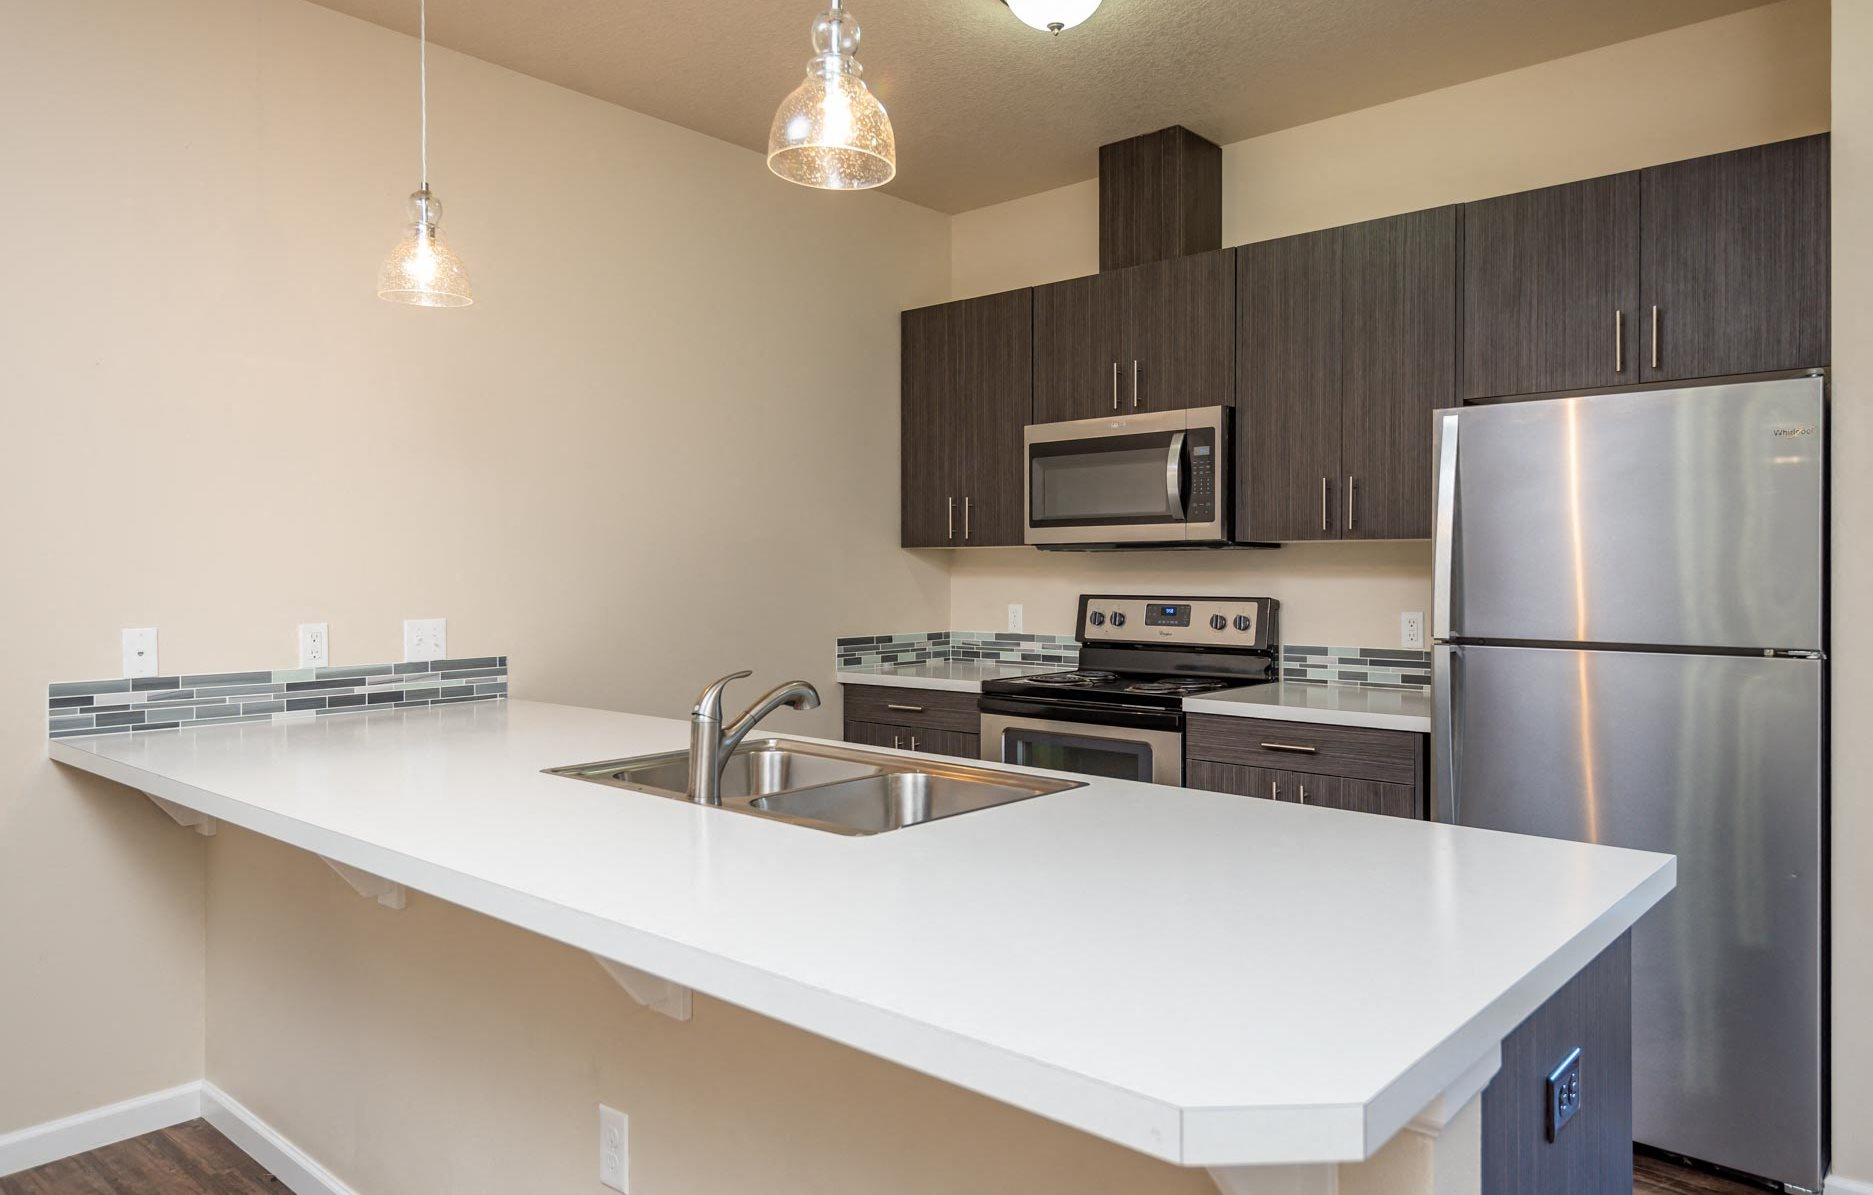 Claxter Park Apartments | Interior kitchen with white quartz countertops, stainless steel refrigerator, stove and upper microwave. Blue and grey backsplash tile. Dark lower and upper cabinetry.